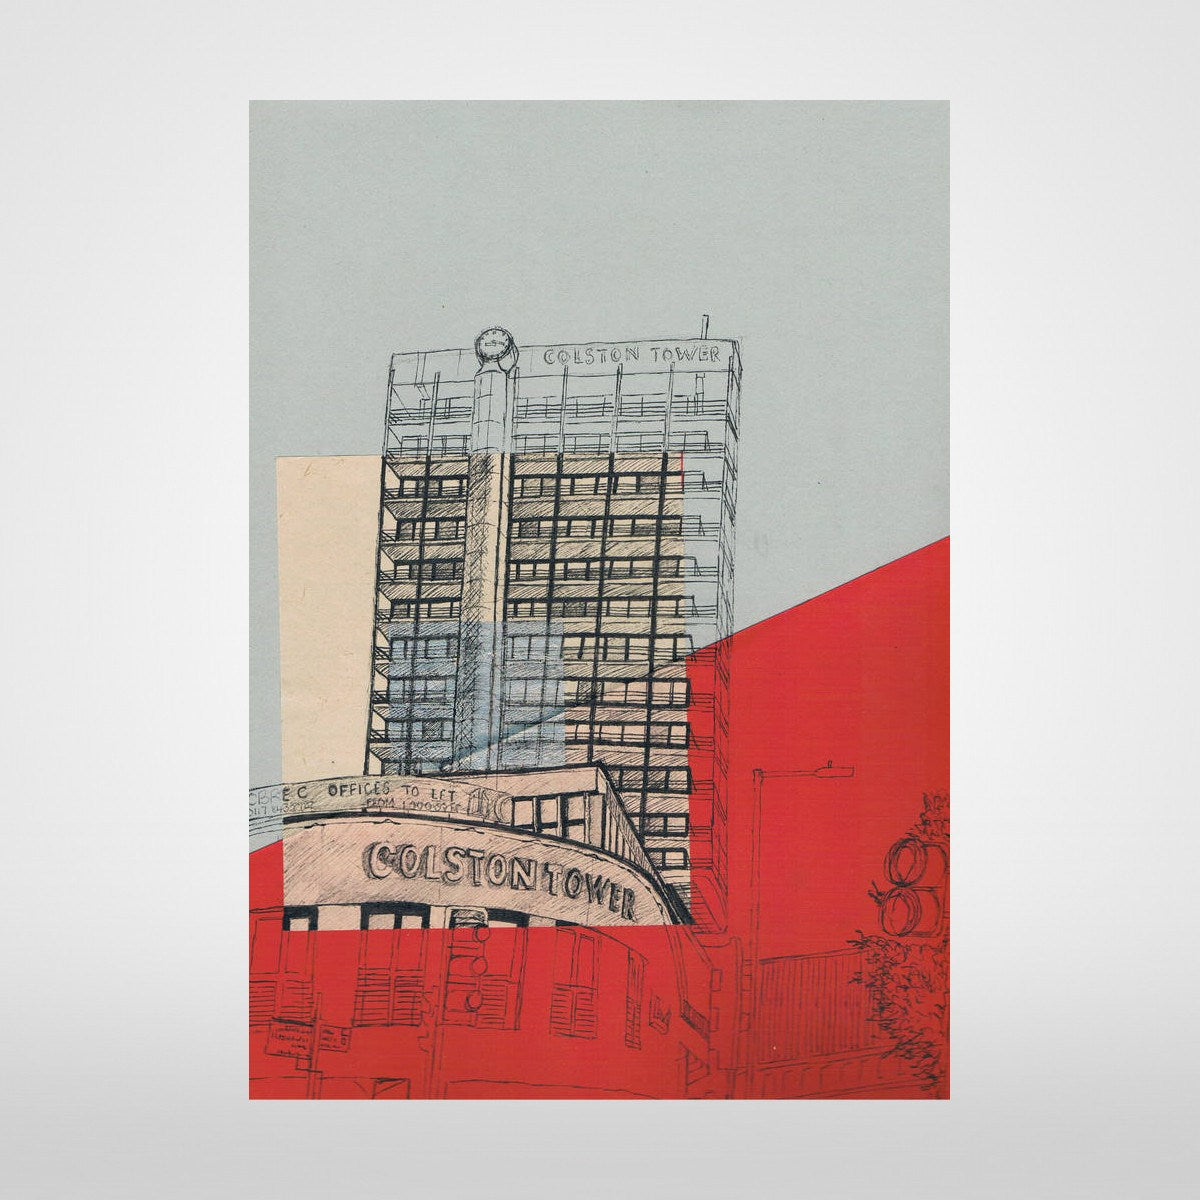 Tower on Grey/Red (formerly Colston) Print by Lisa Malyon at The Bristol Shop